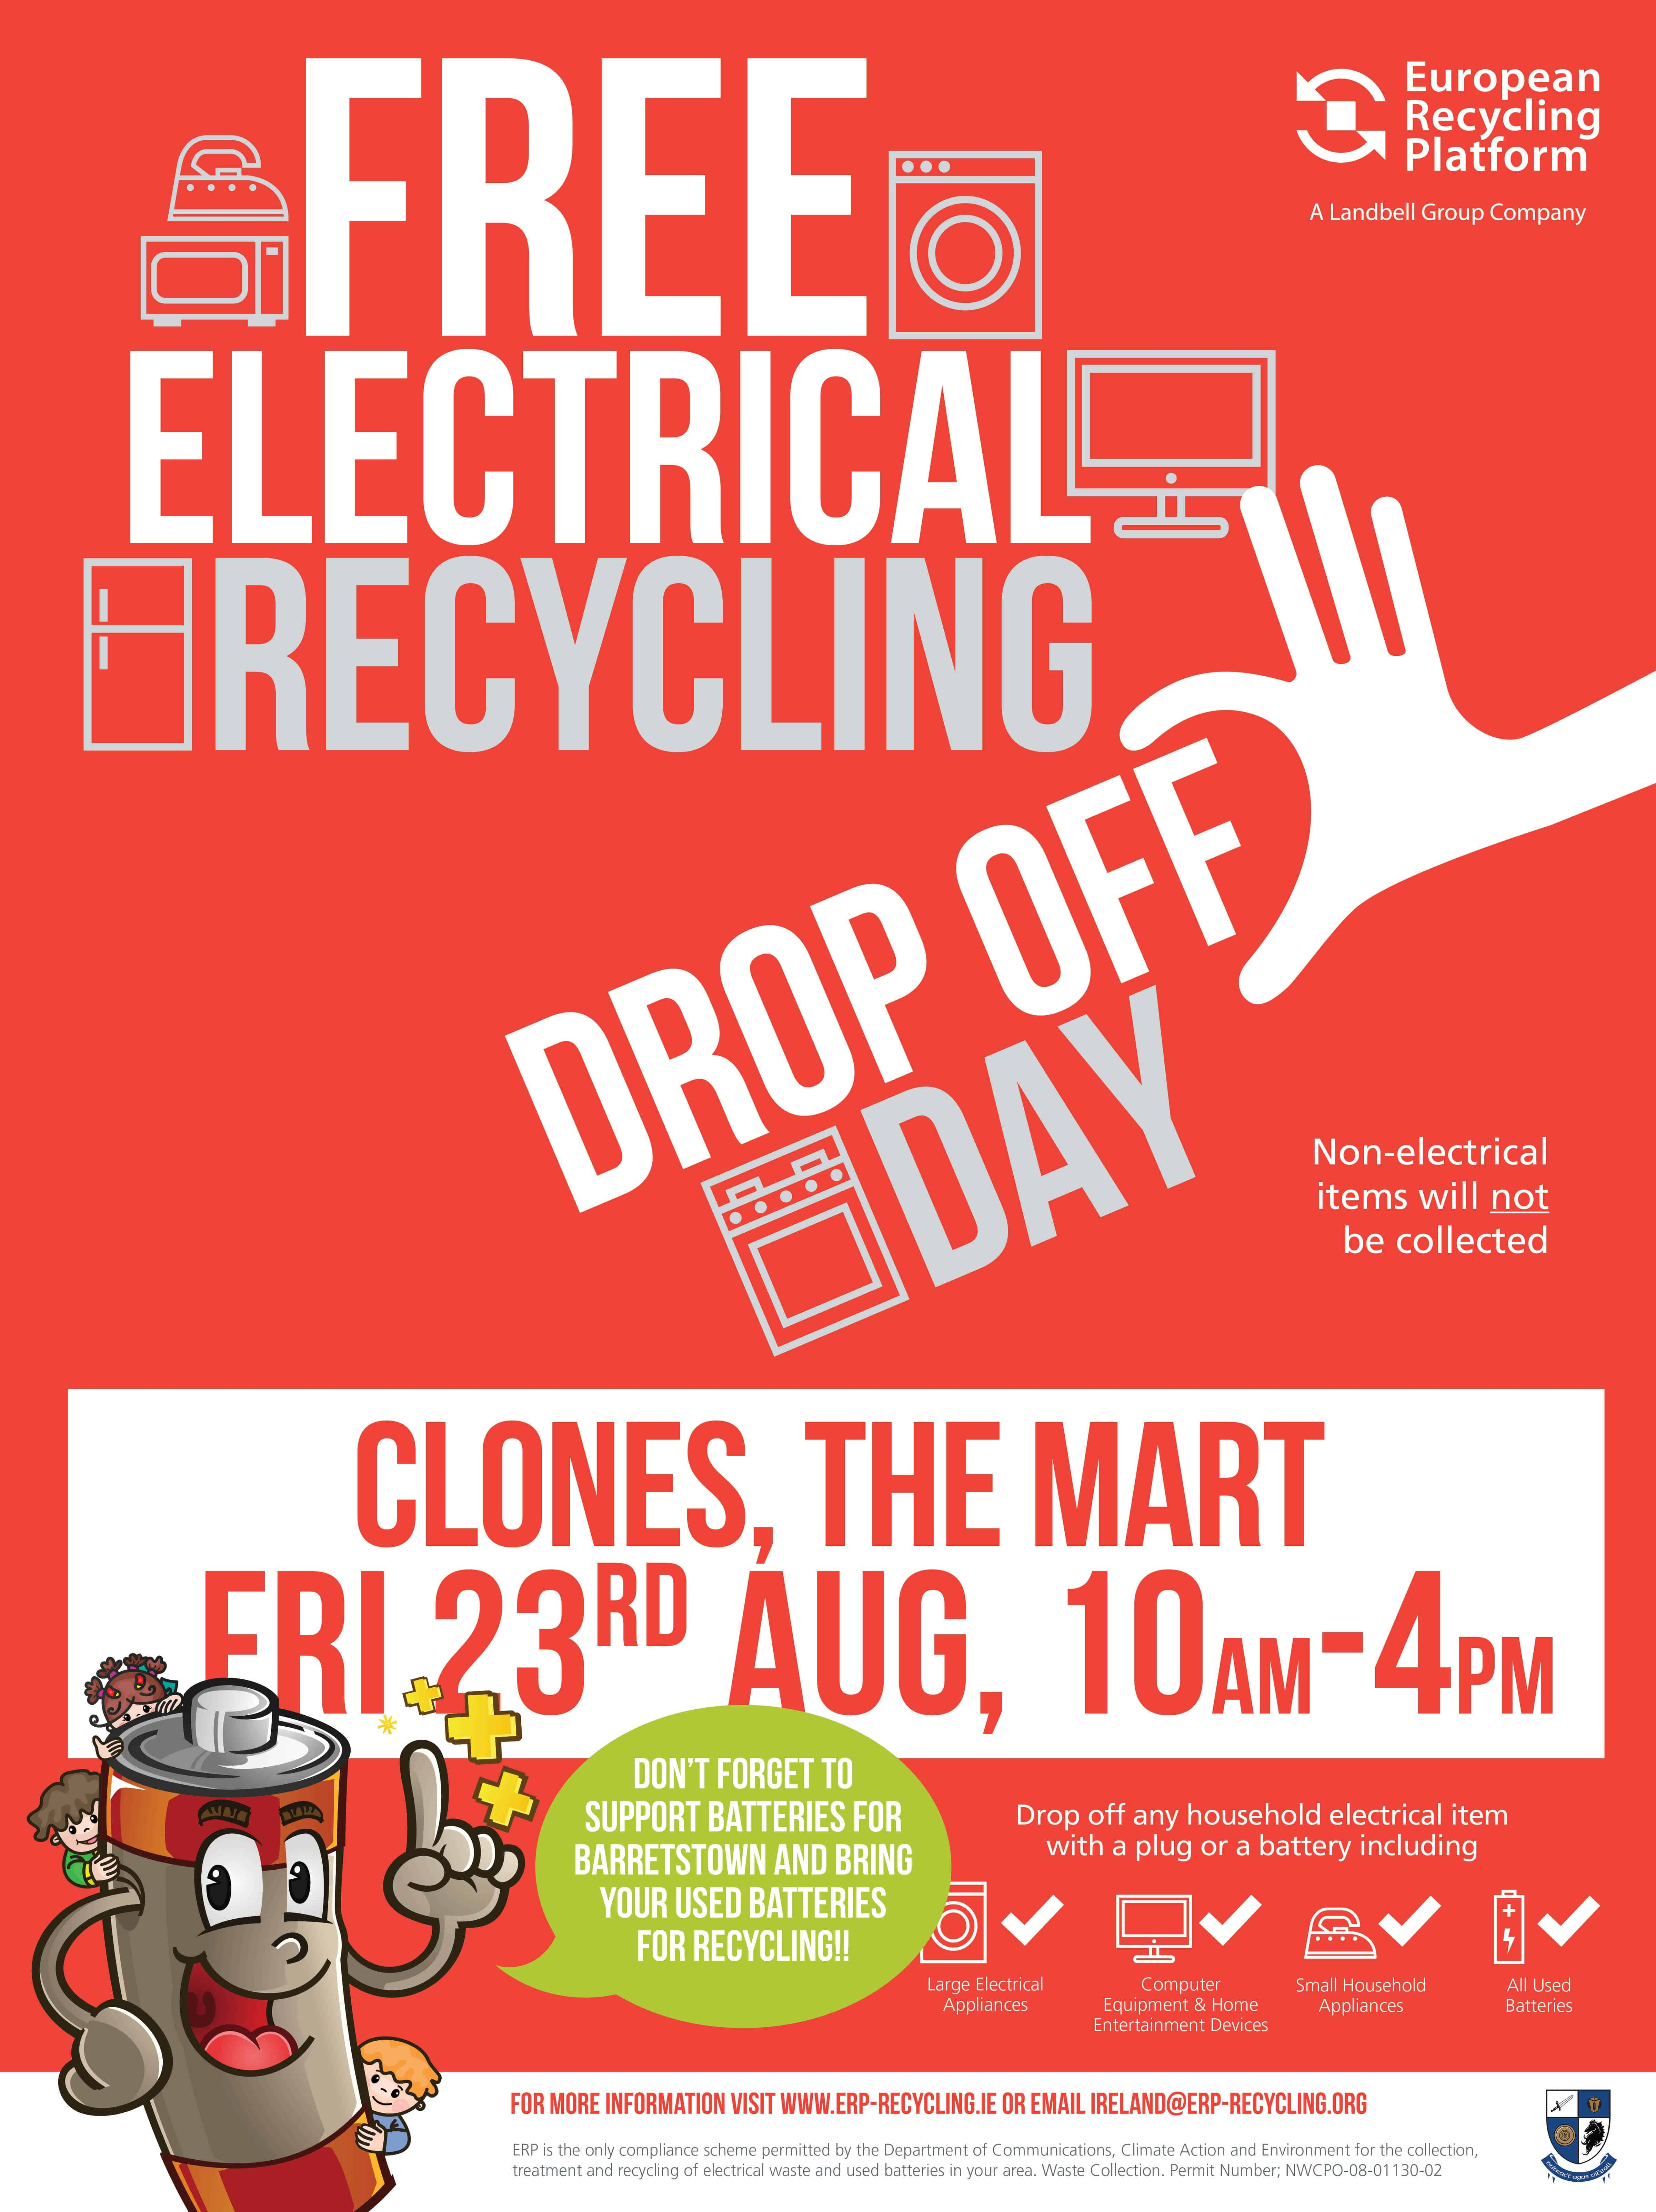 Electrical Recycling Drop Off Day on Friday 23rd August at The Mart, Clones (10am – 4pm)